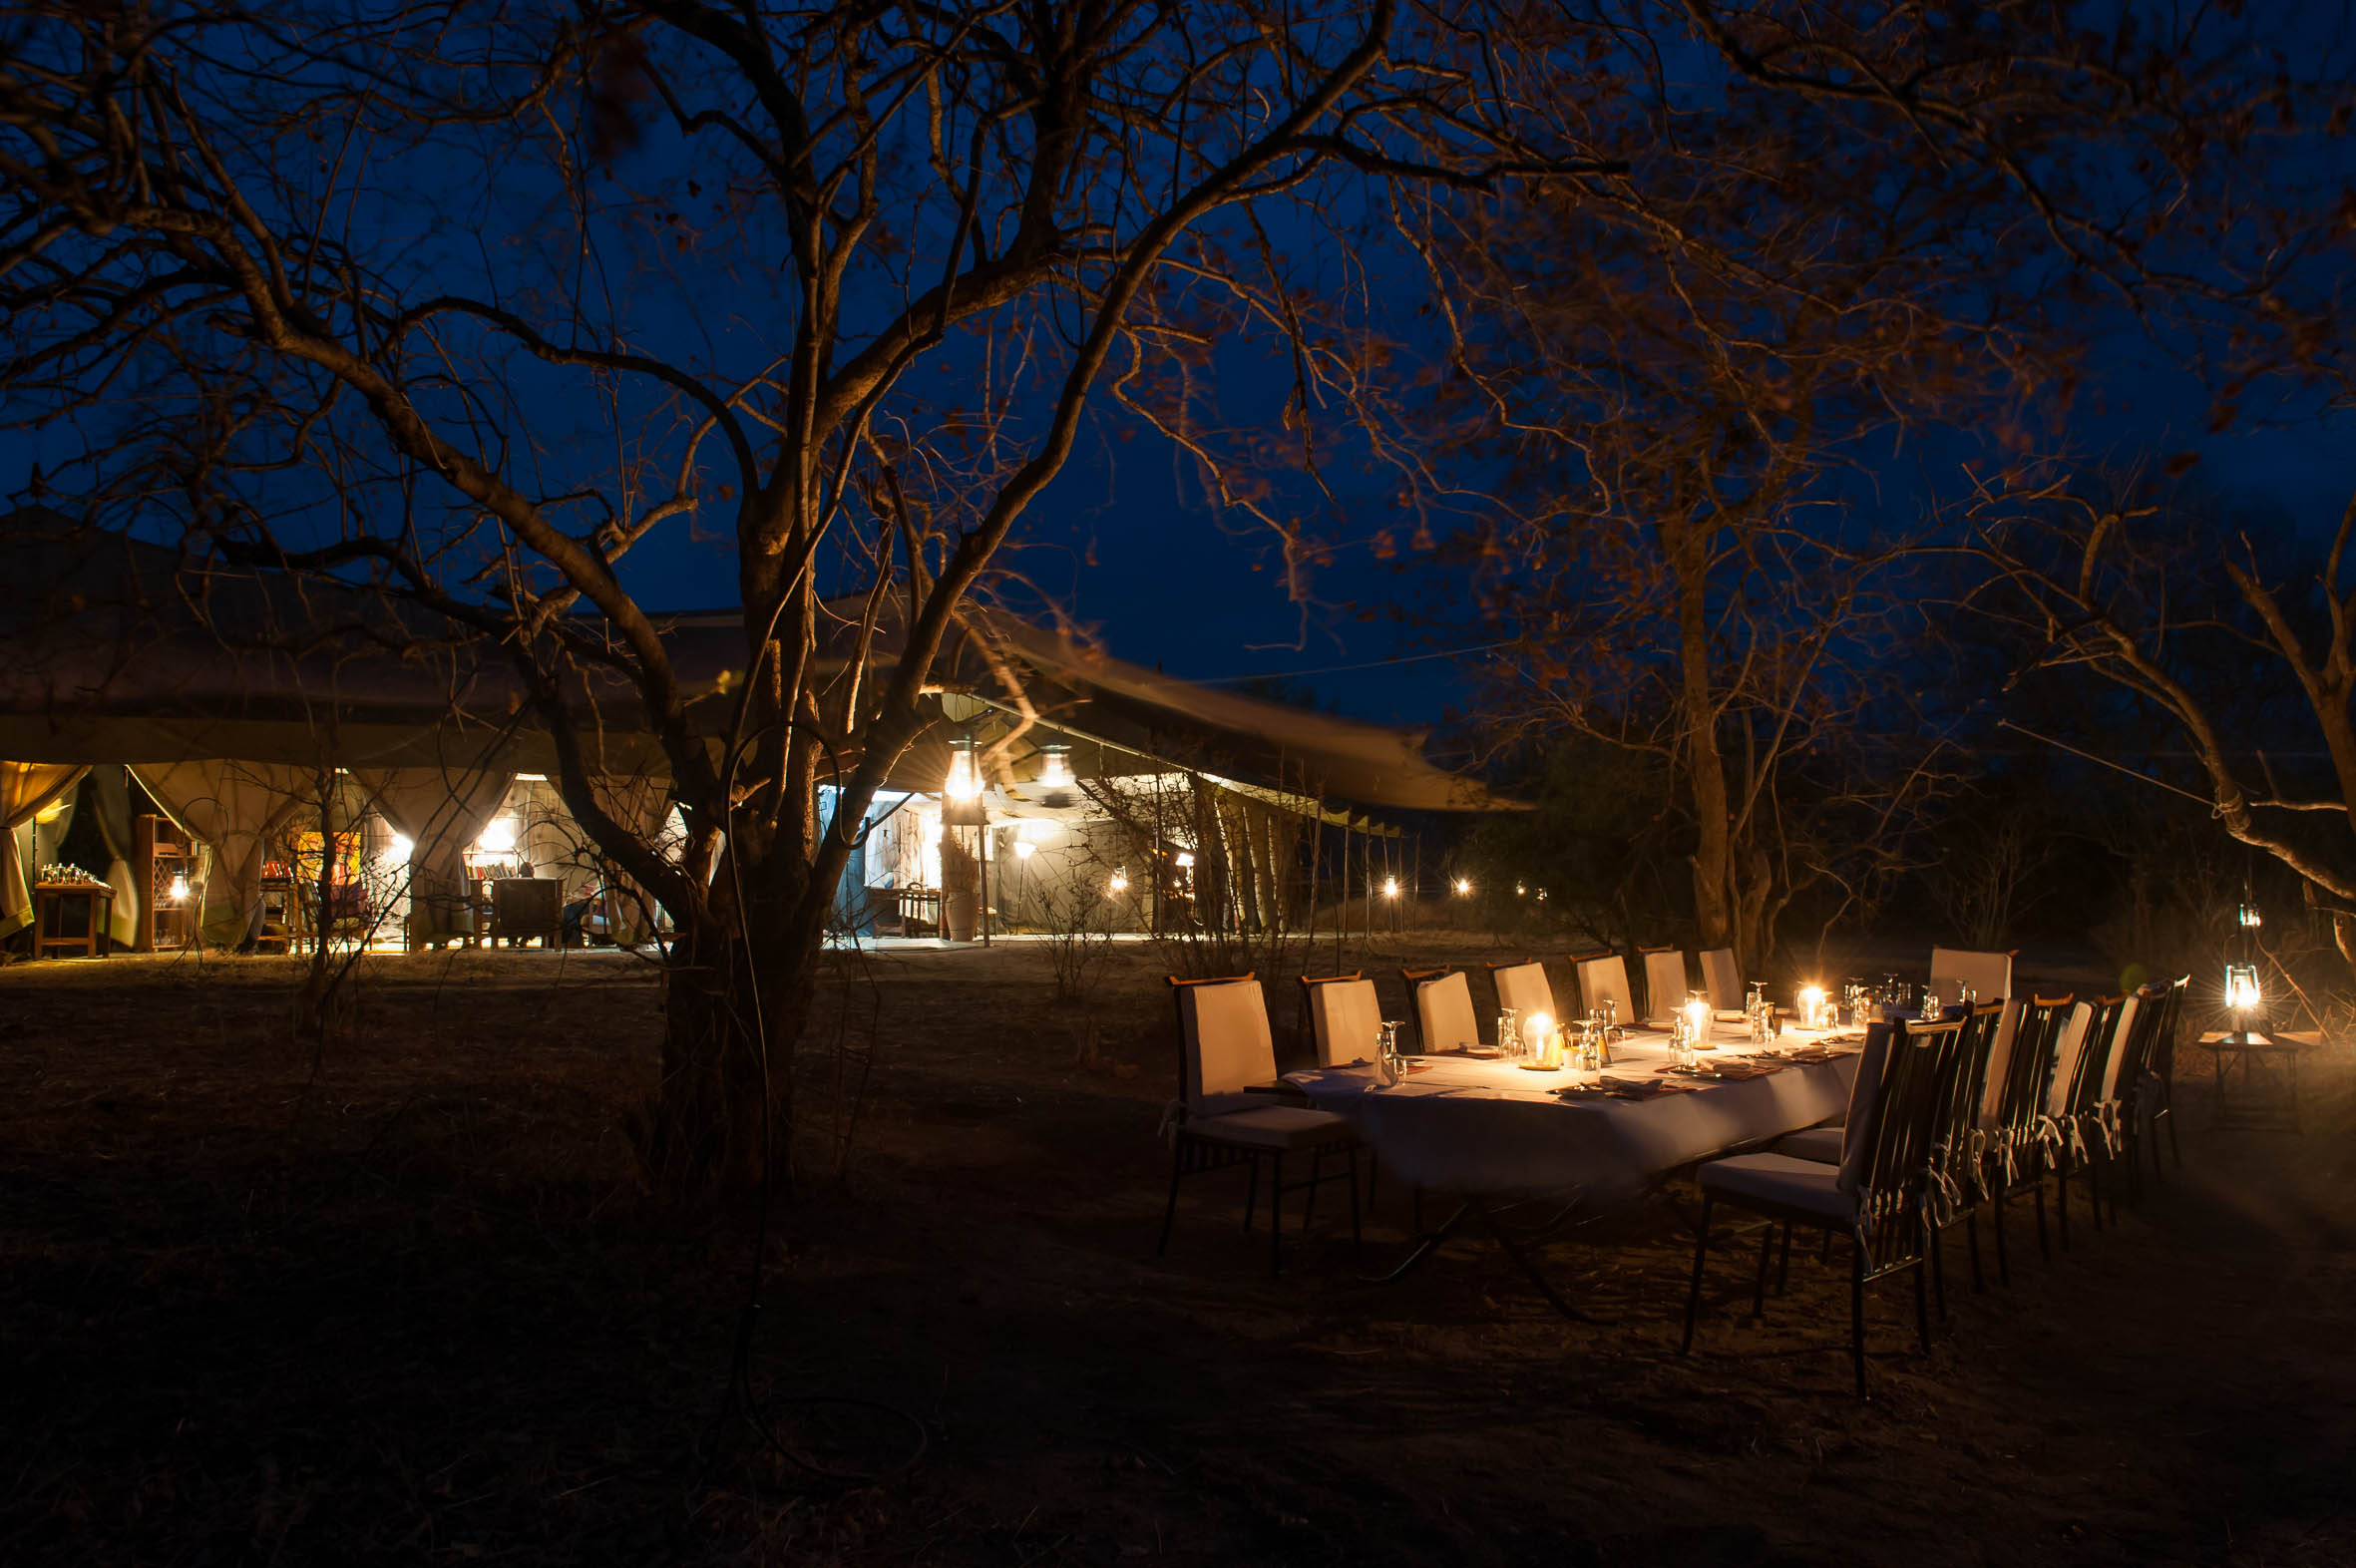 Kwihala-Camp-Mess-Area-Dining-At-Night-Paul-Joynson-Hicks-LR.jpg